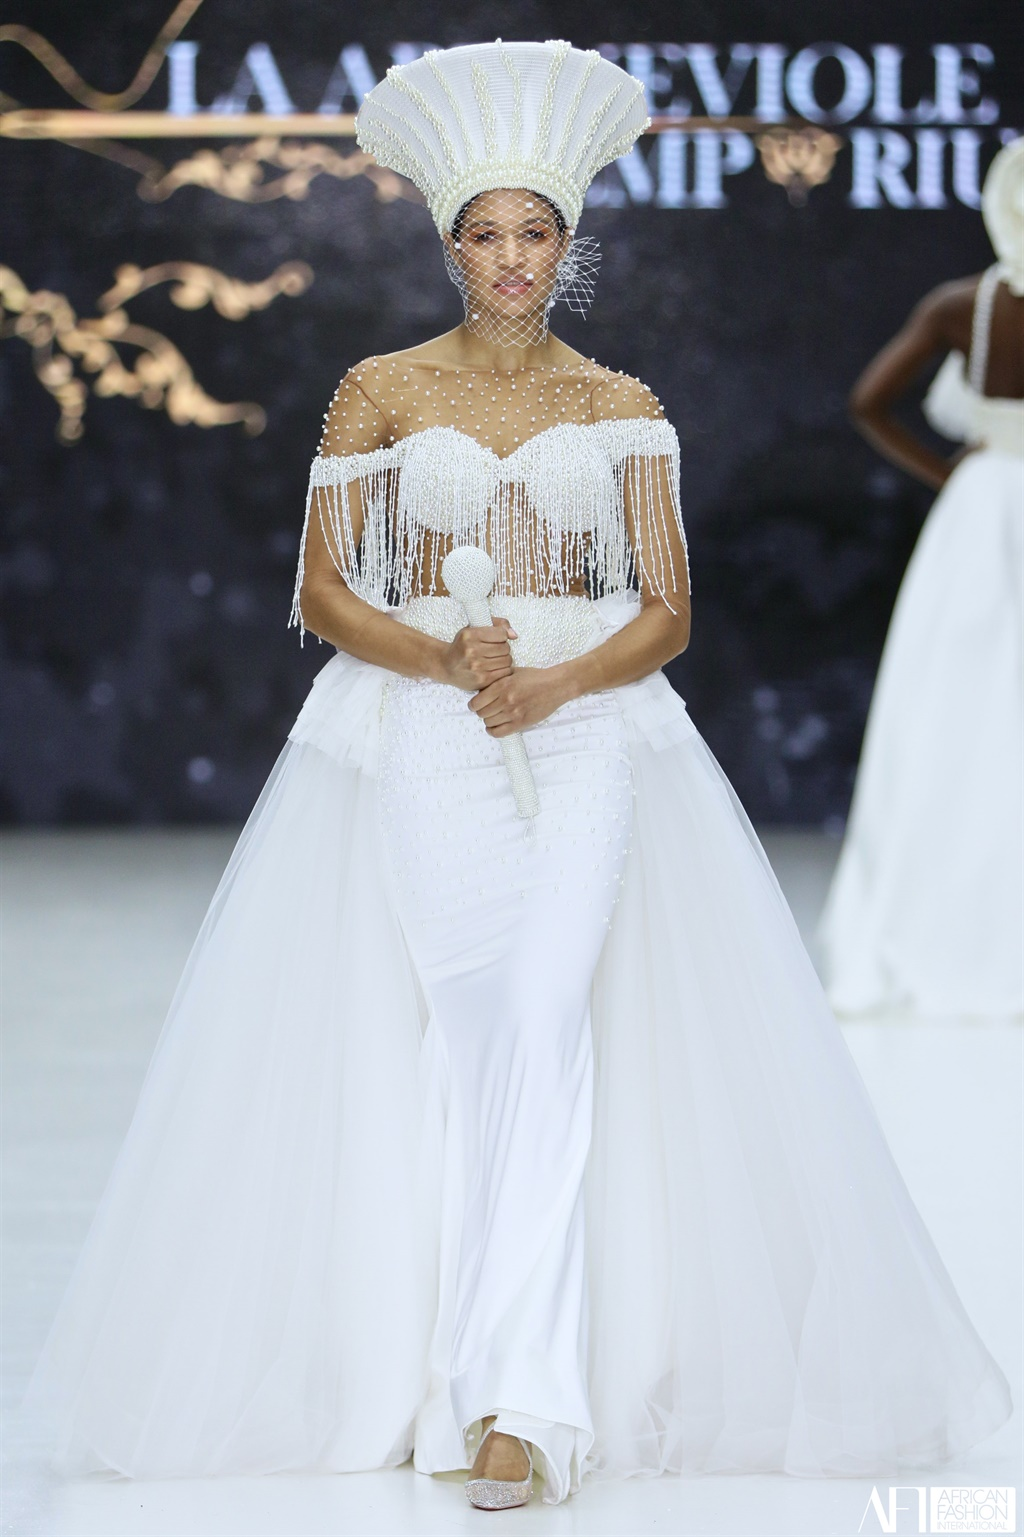 2d3d020d0cd7 Need some wedding dress inspiration? Why not look local | City Press